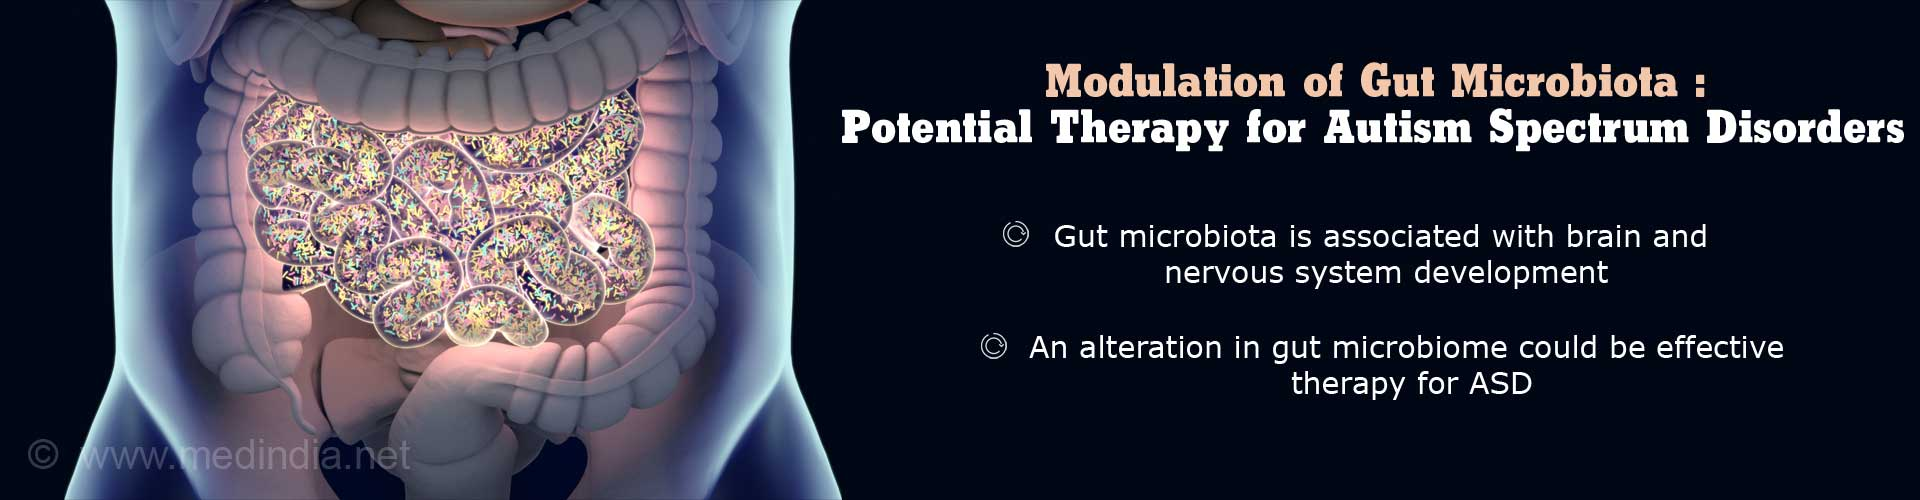 Modualtion of Gut Microbiota: Potential Therapy for Autism Spectrum Disorder - Gut microbiota is associated with brain and nervous system development - An alteration in gut microbiome could be effective therapy for ASD